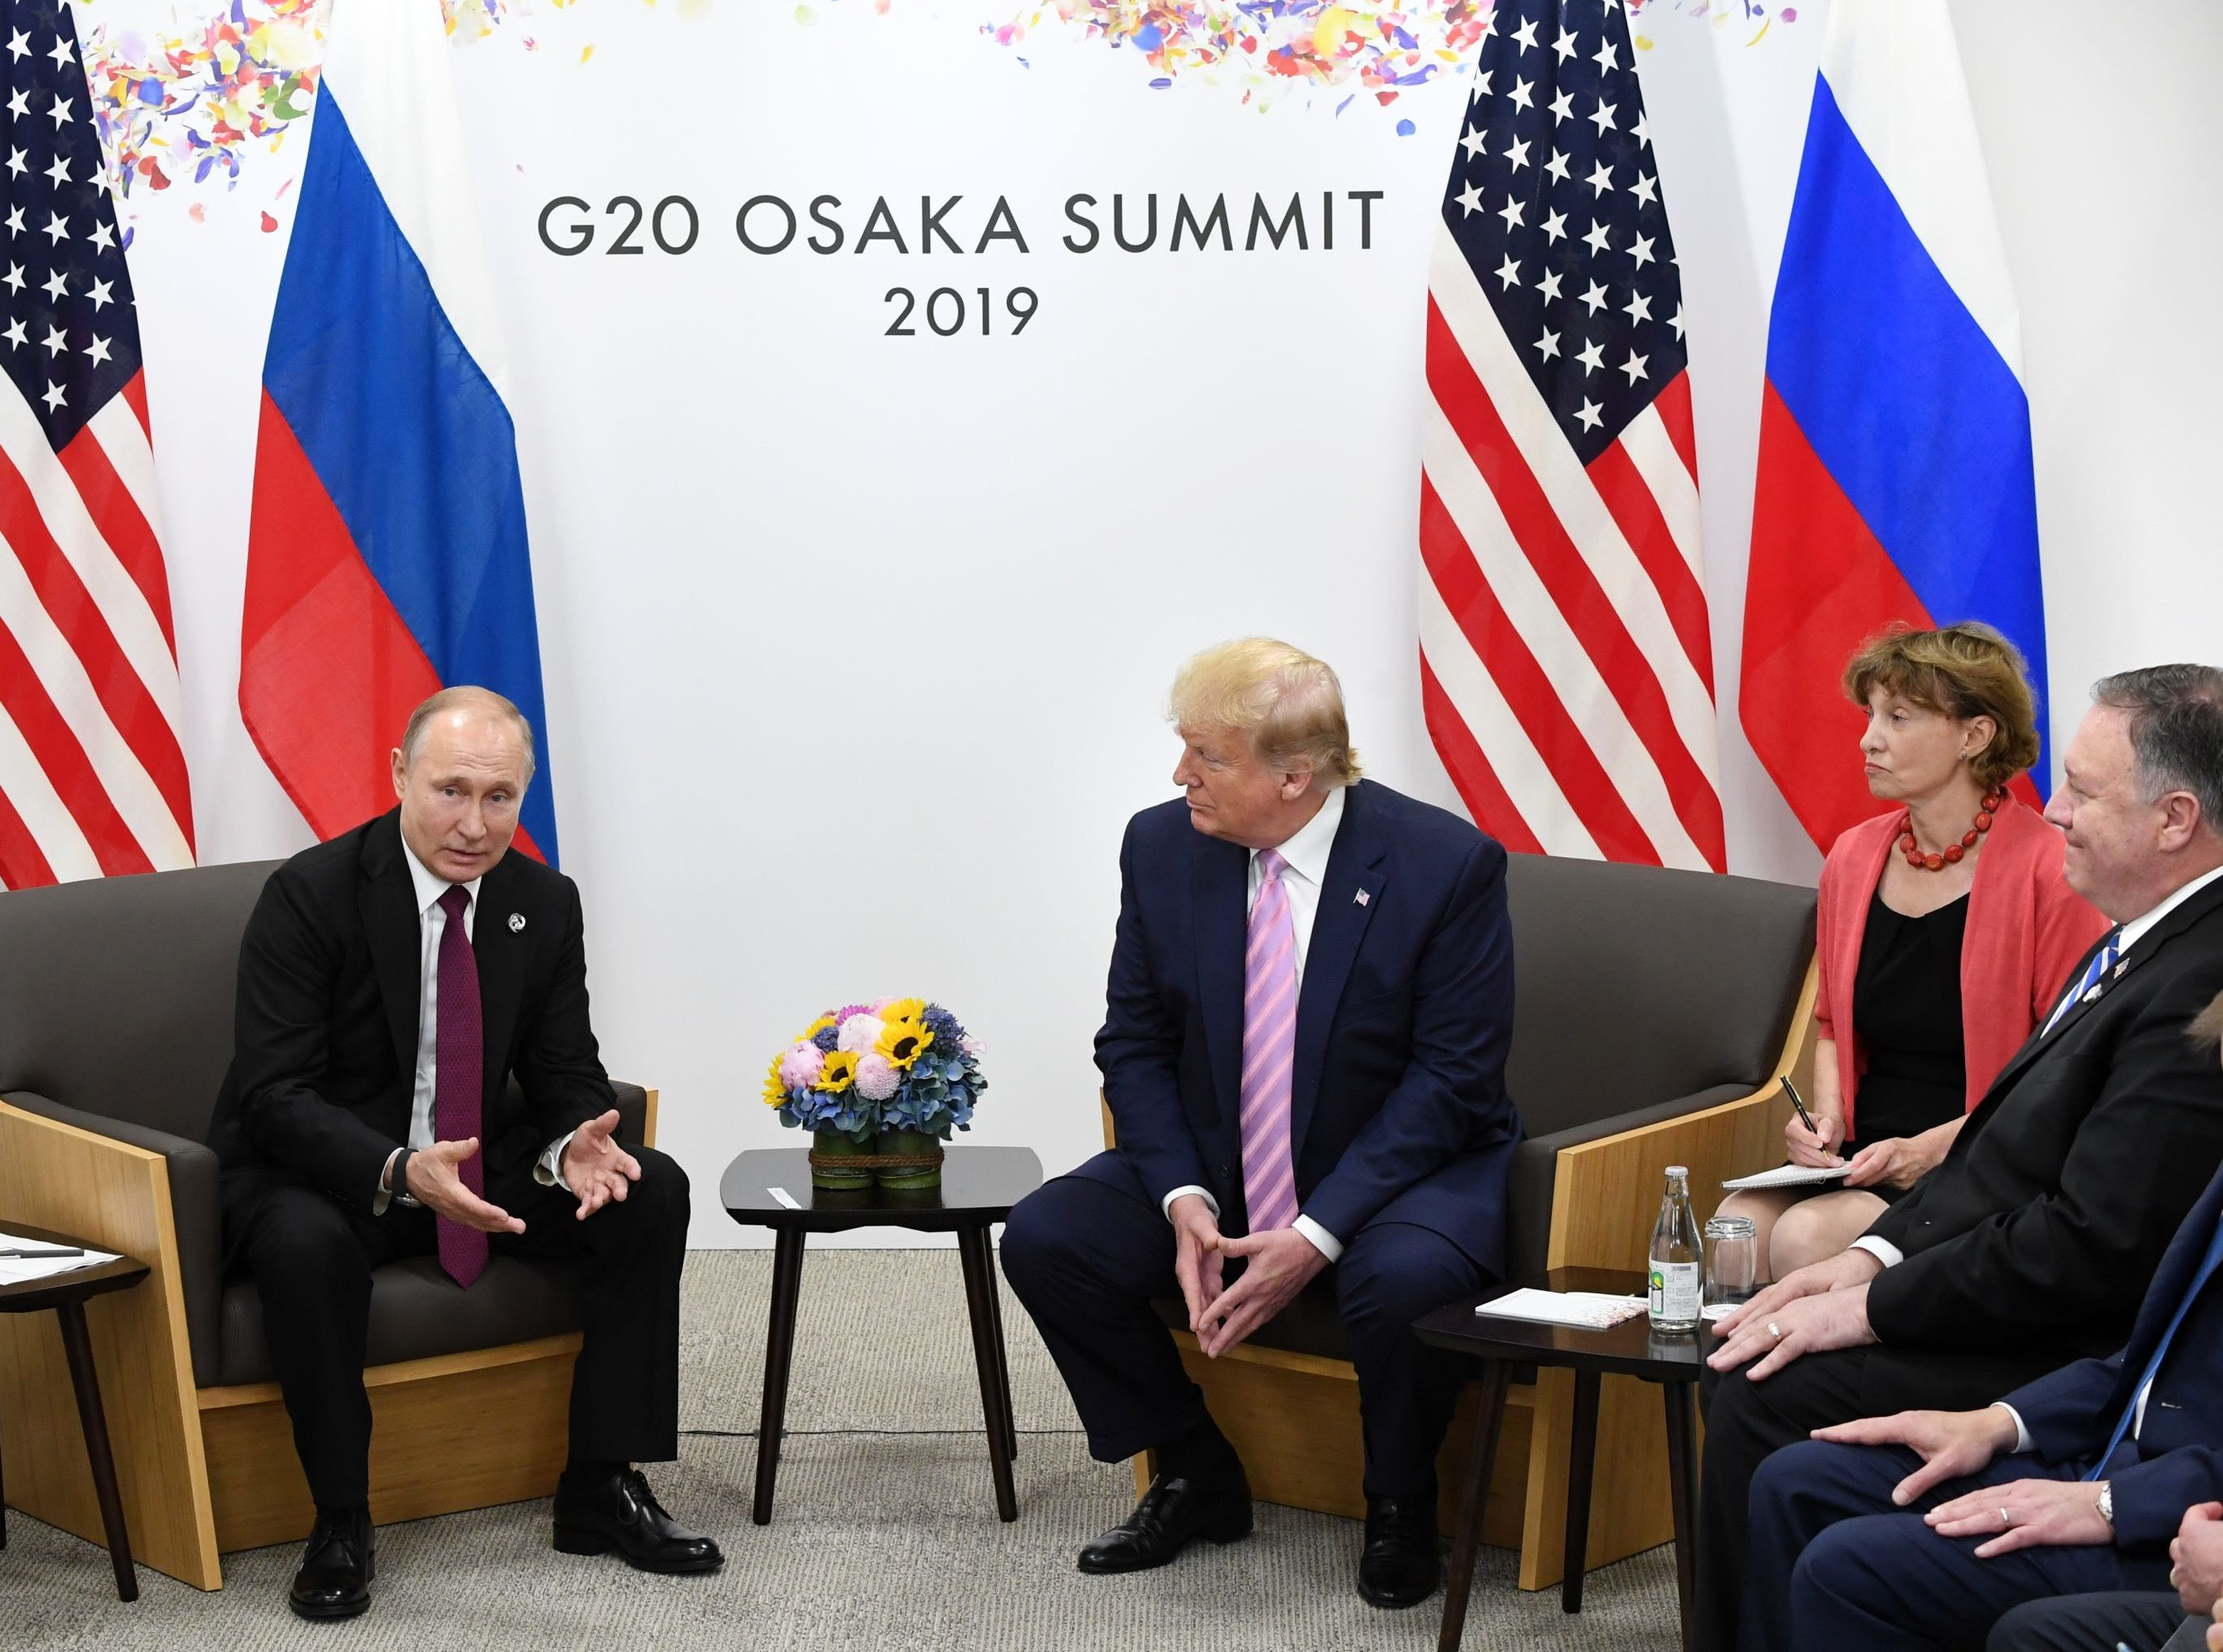 Russian President Vladimir Putin and U.S. President Donald Trump shake hands during a bilateral meeting at the at the Group of 20 (G20) leaders summit in Osaka, Japan